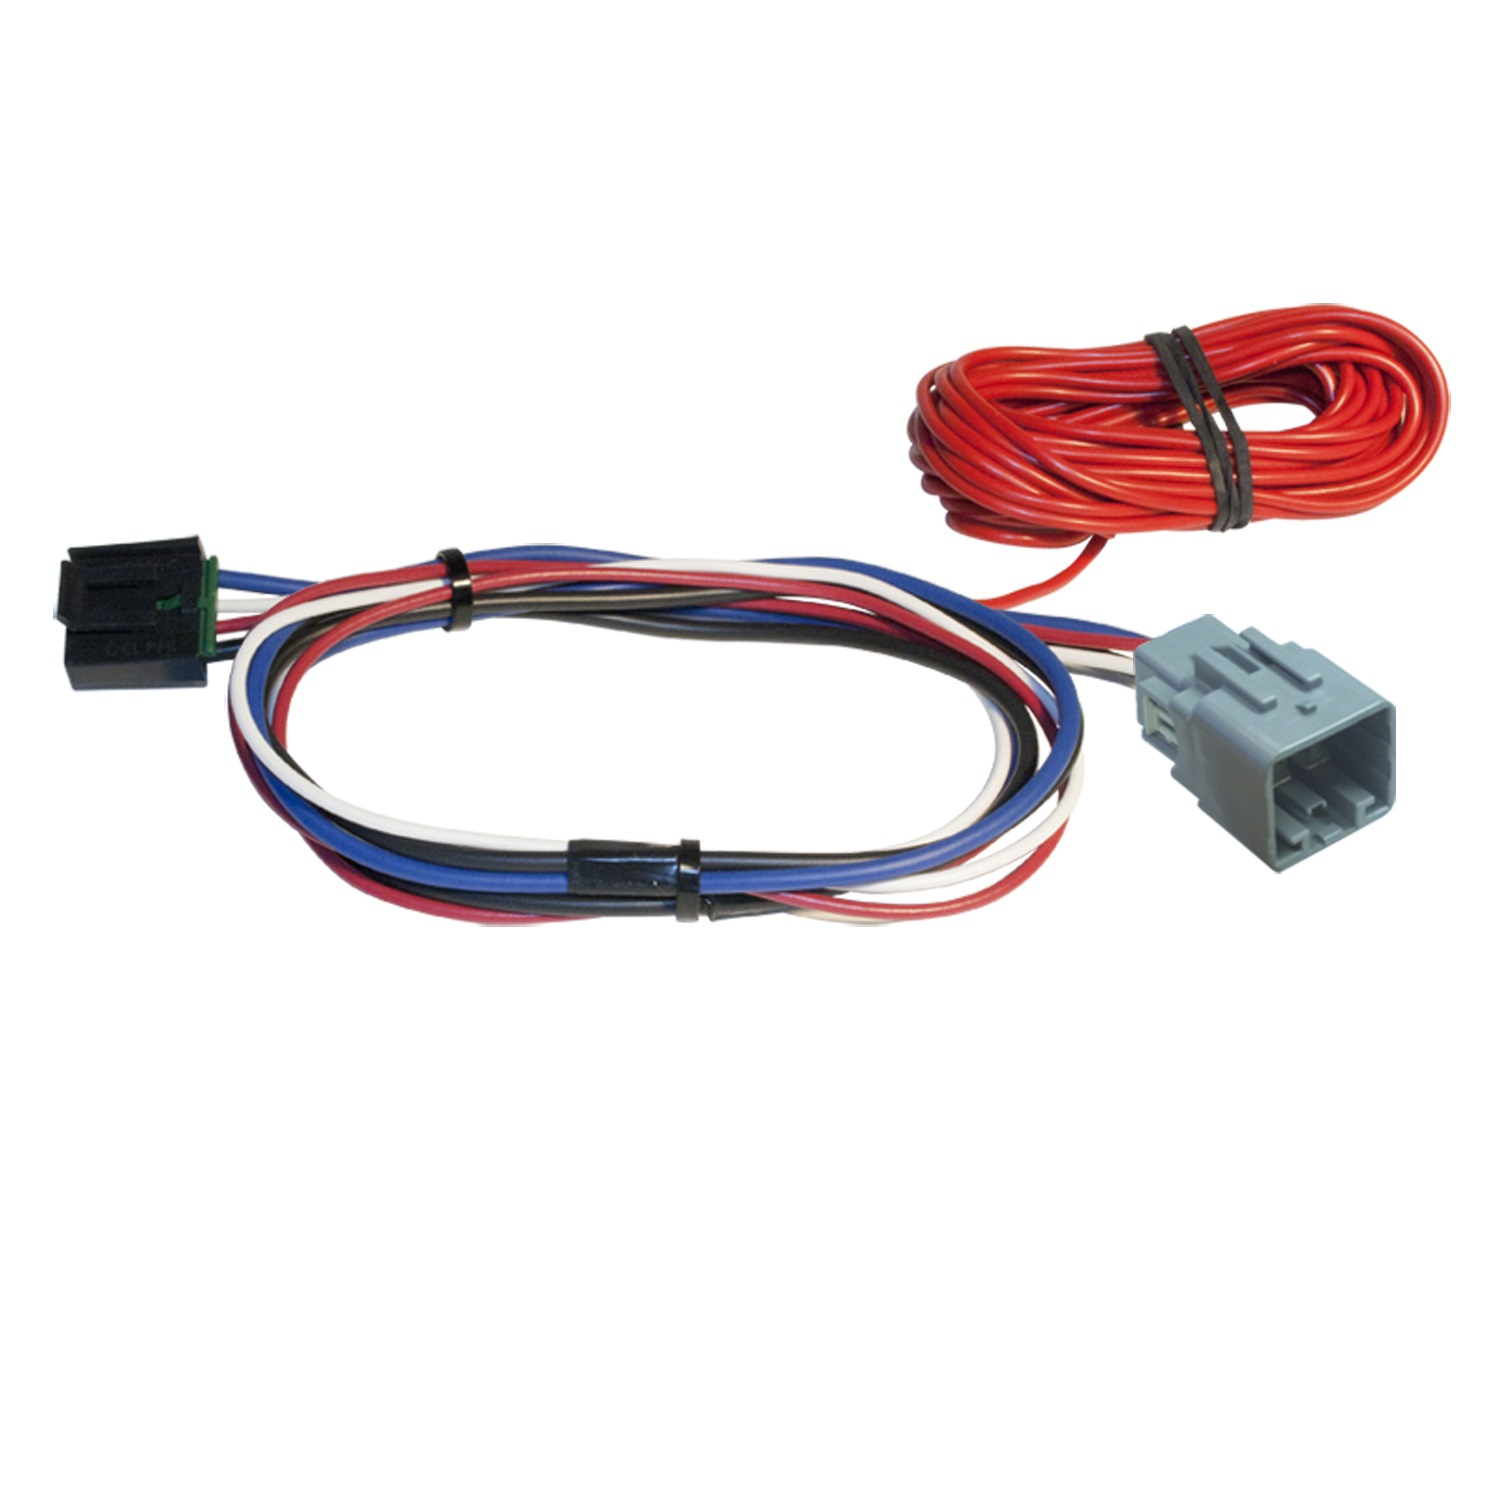 Westin 2013-2014 Ram 1500/2500/3500 Wiring Harness - Black